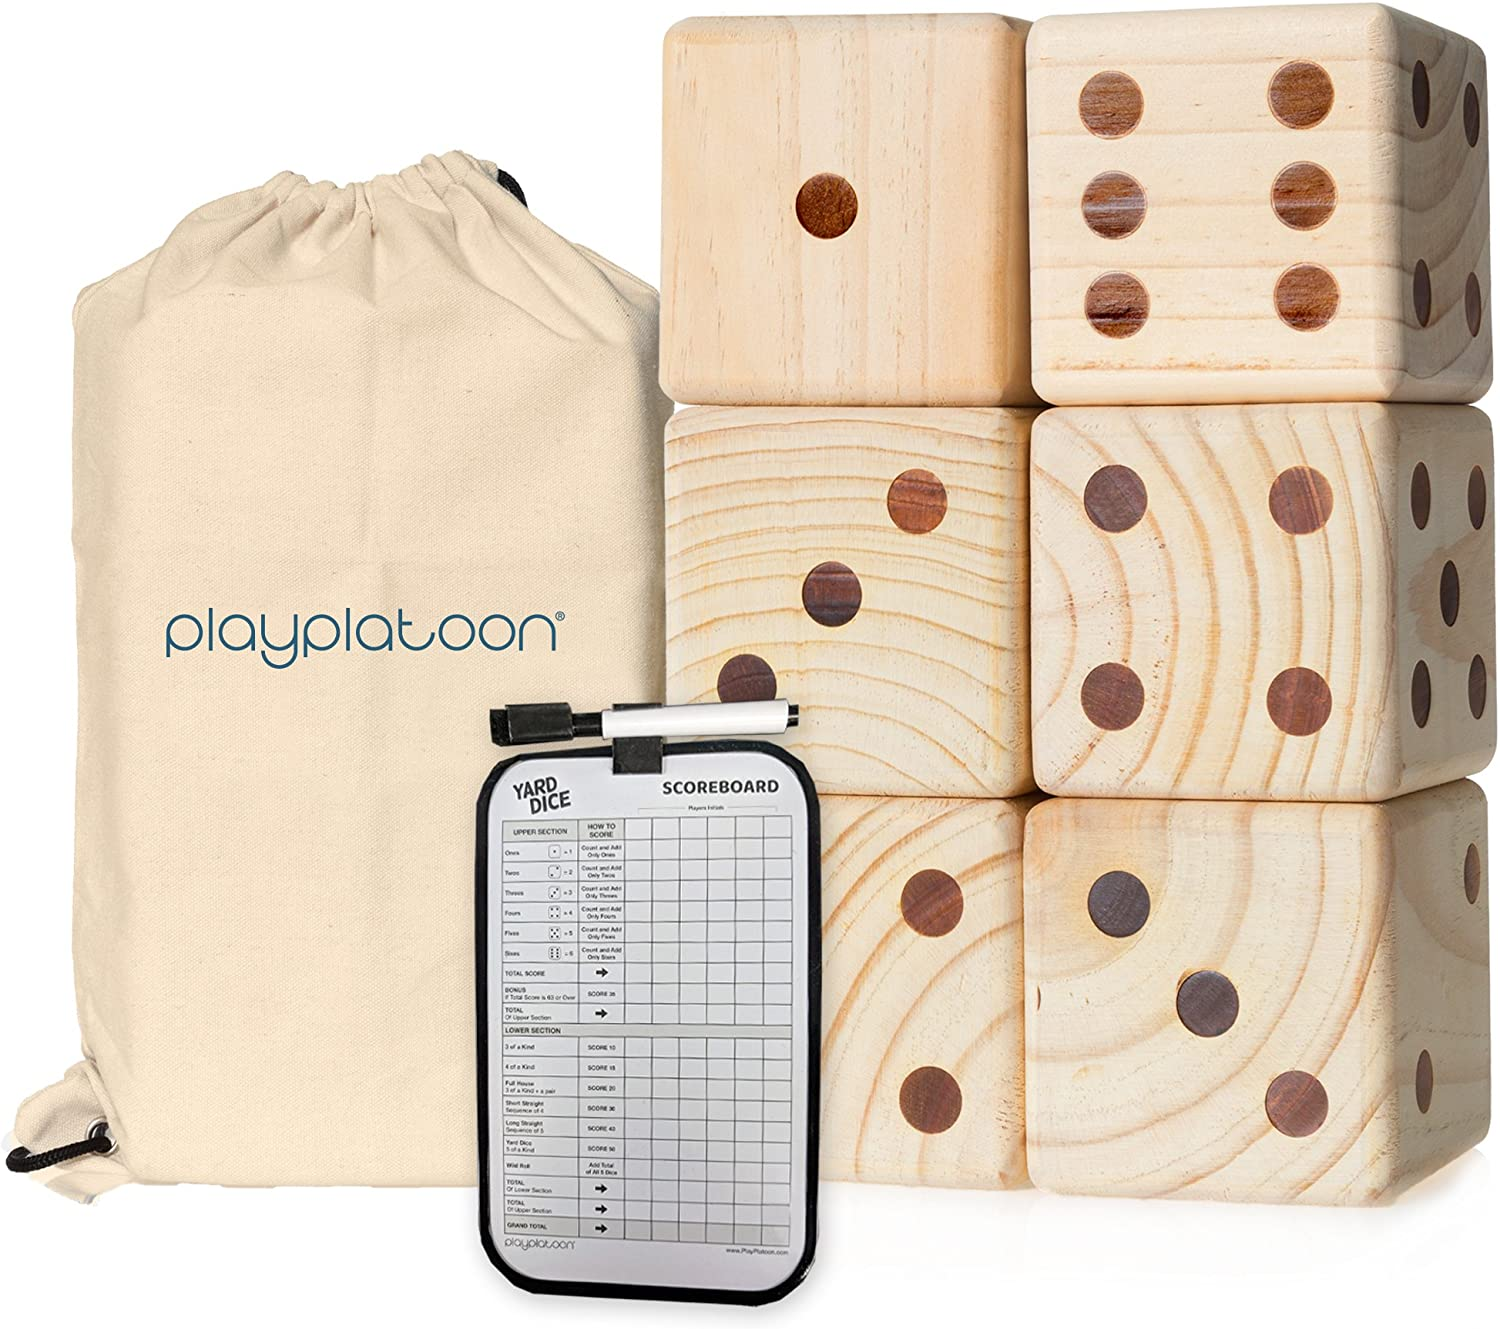 Play Platoon Lawn Dice specialty shop - Giant Today's only Yard Playing Wooden Game for